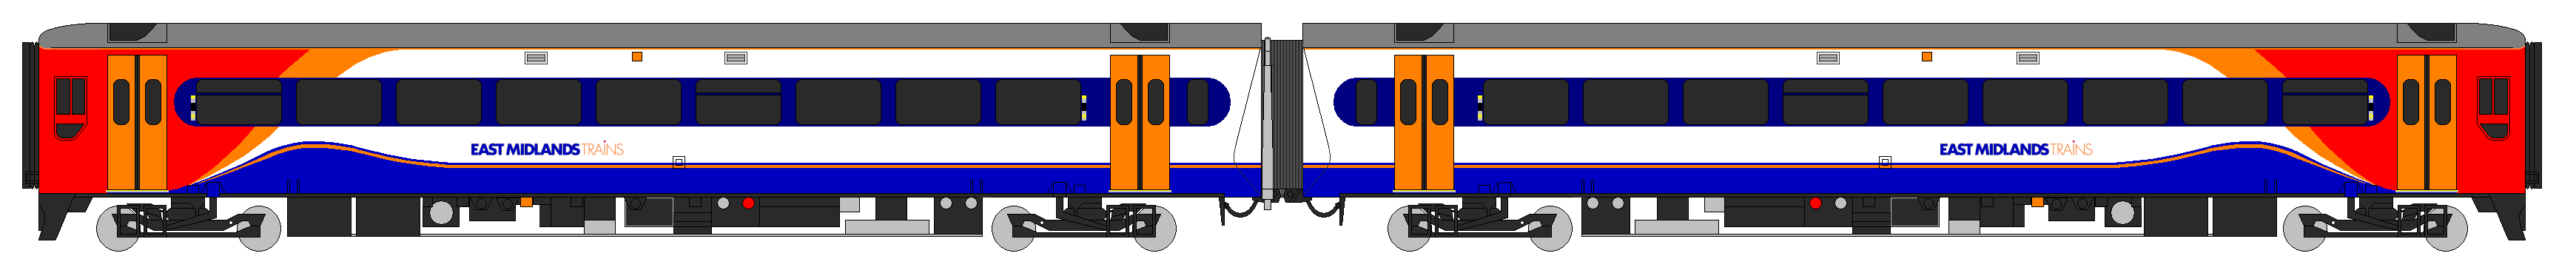 File:Class 158 East Midlands Trains Diagram.PNG - Trains PNG Side View